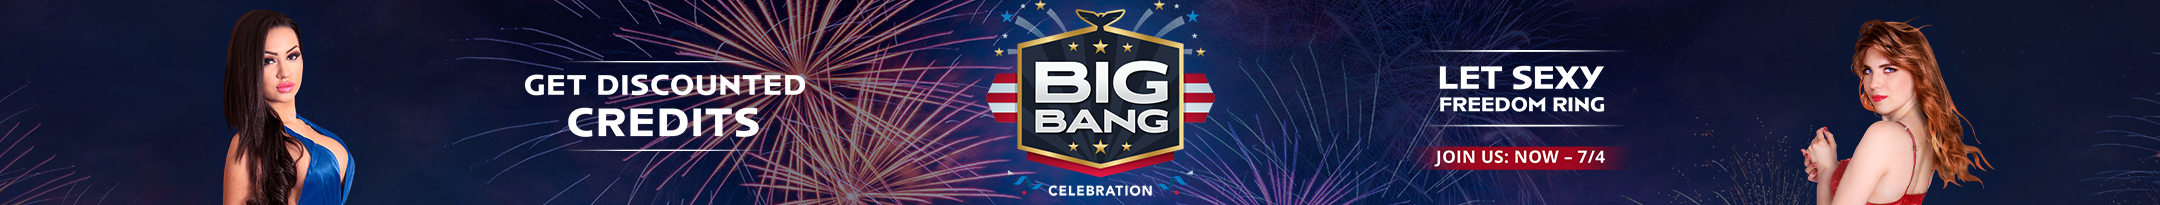 Big Bang Discount (Day 2) Promo